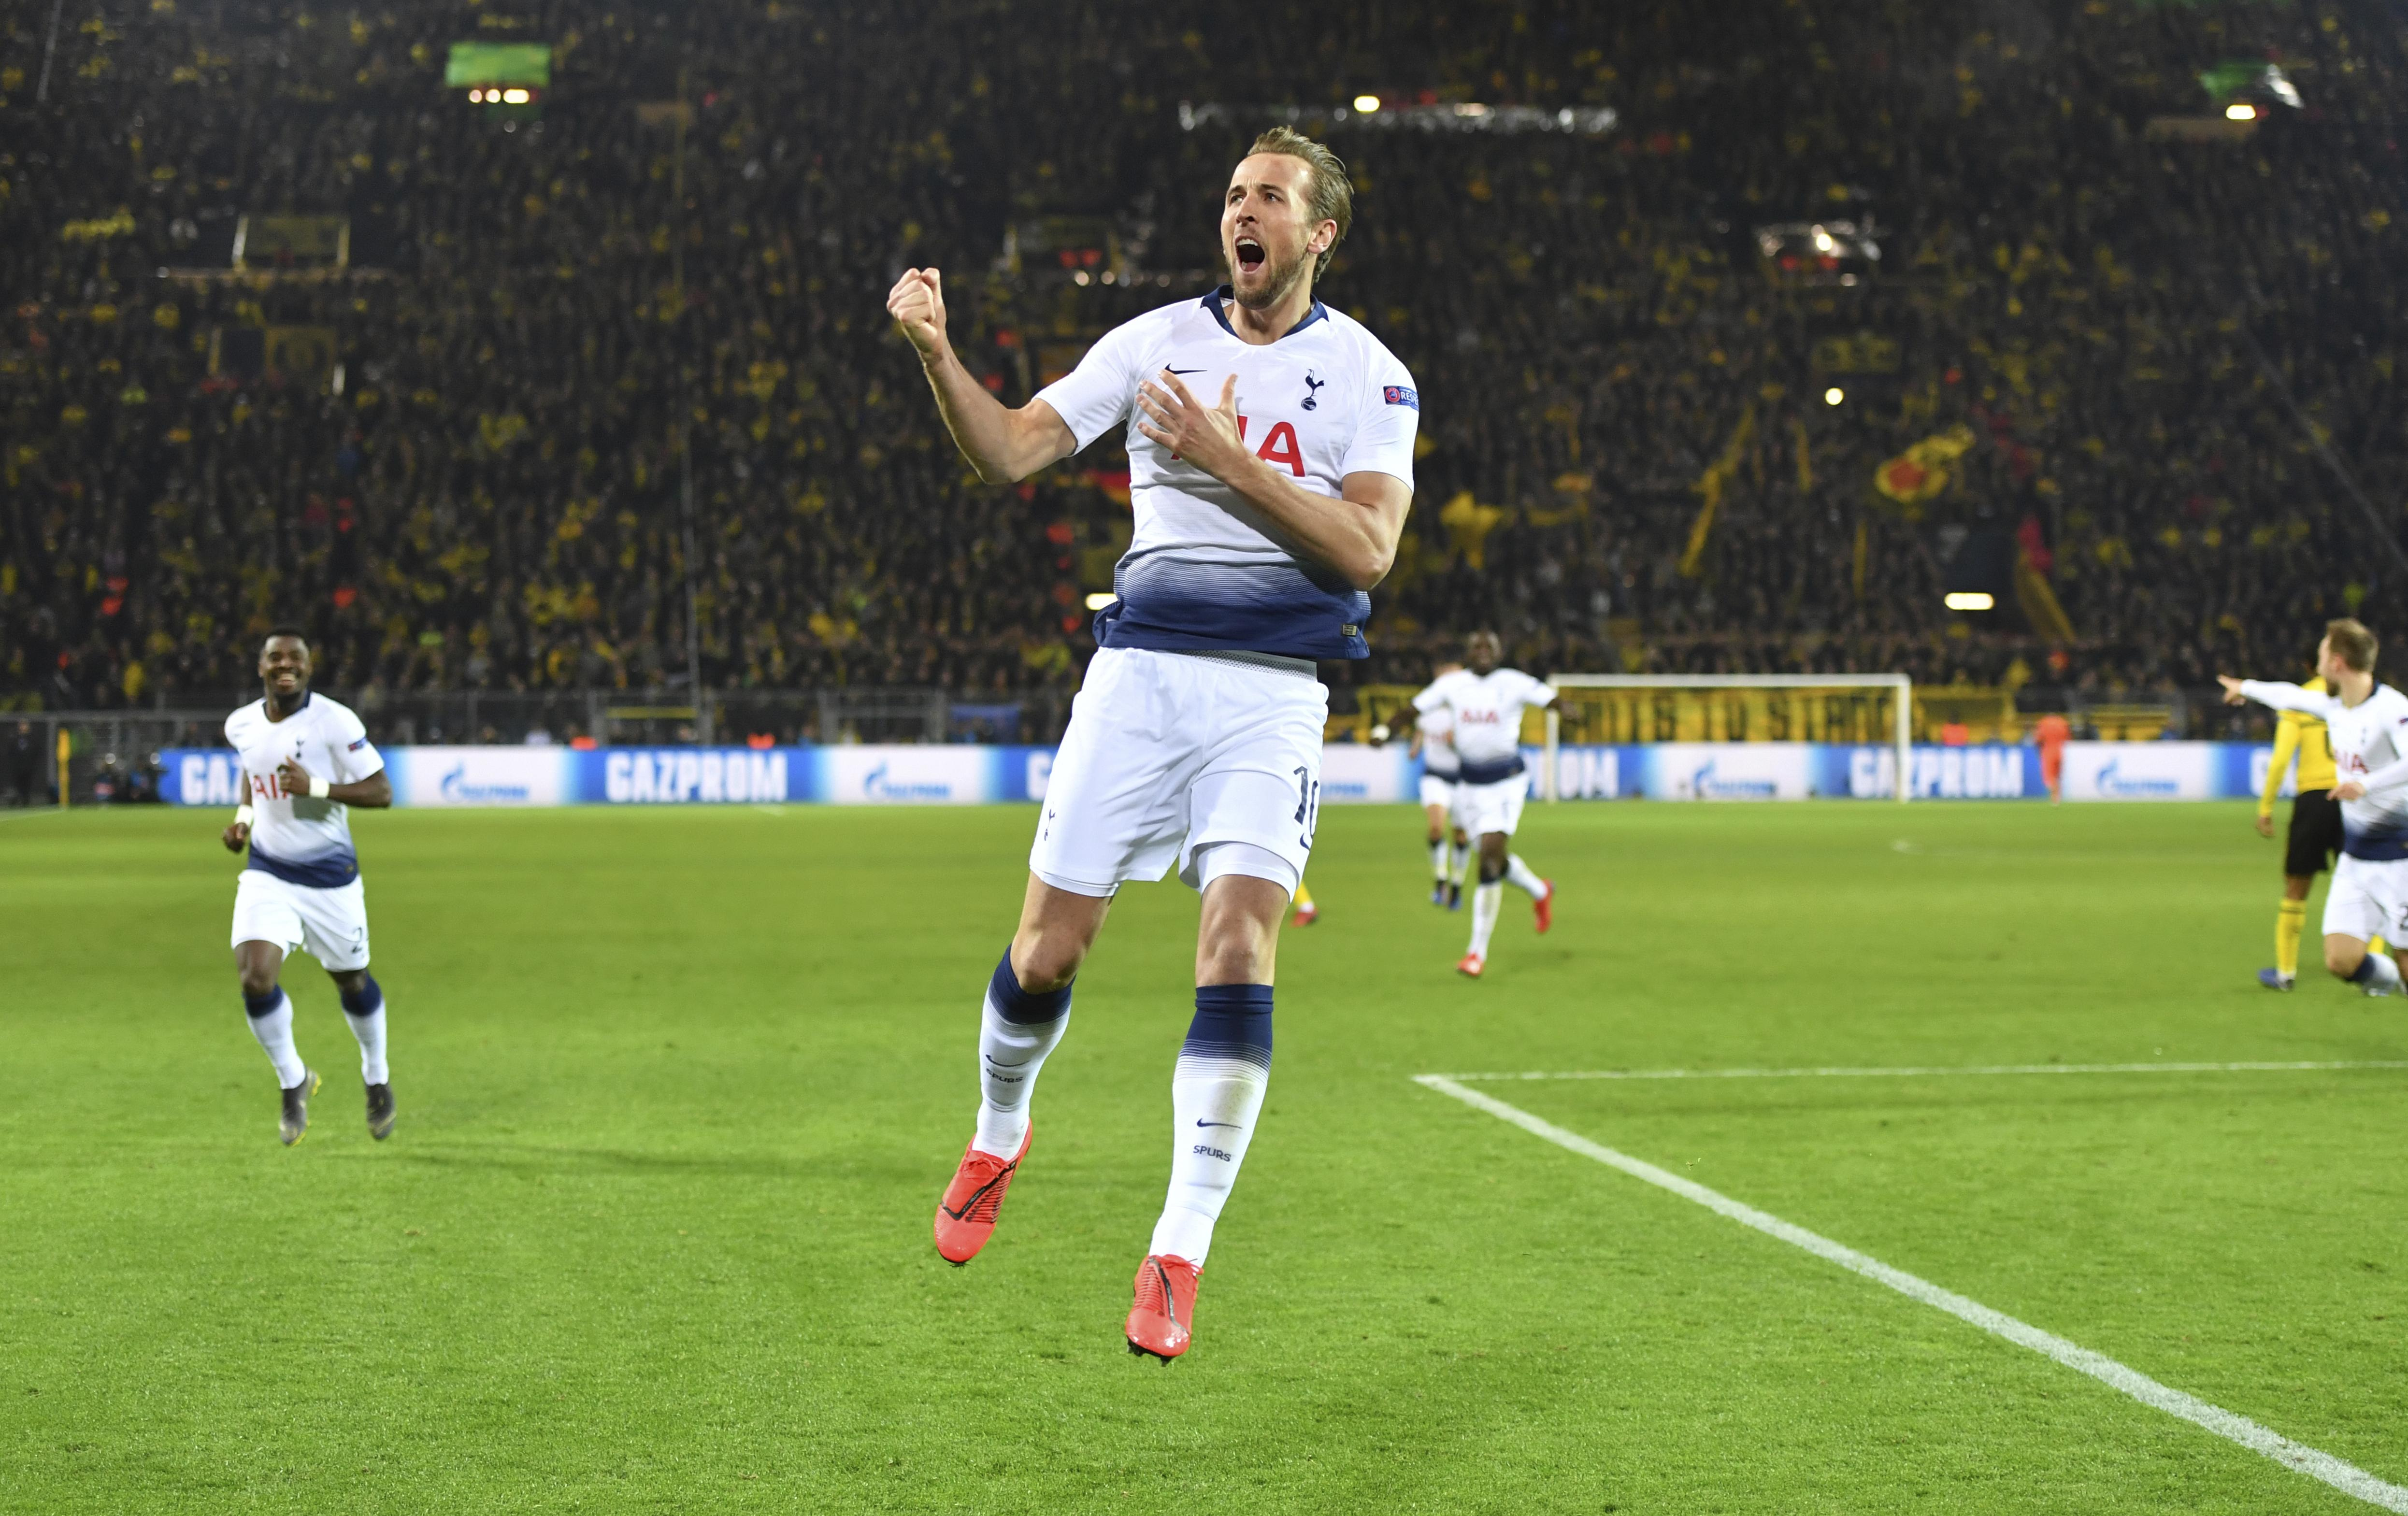 a0c145e7cca Tottenham forward Harry Kane celebrates after scoring the opening goal  during the Champions League round of